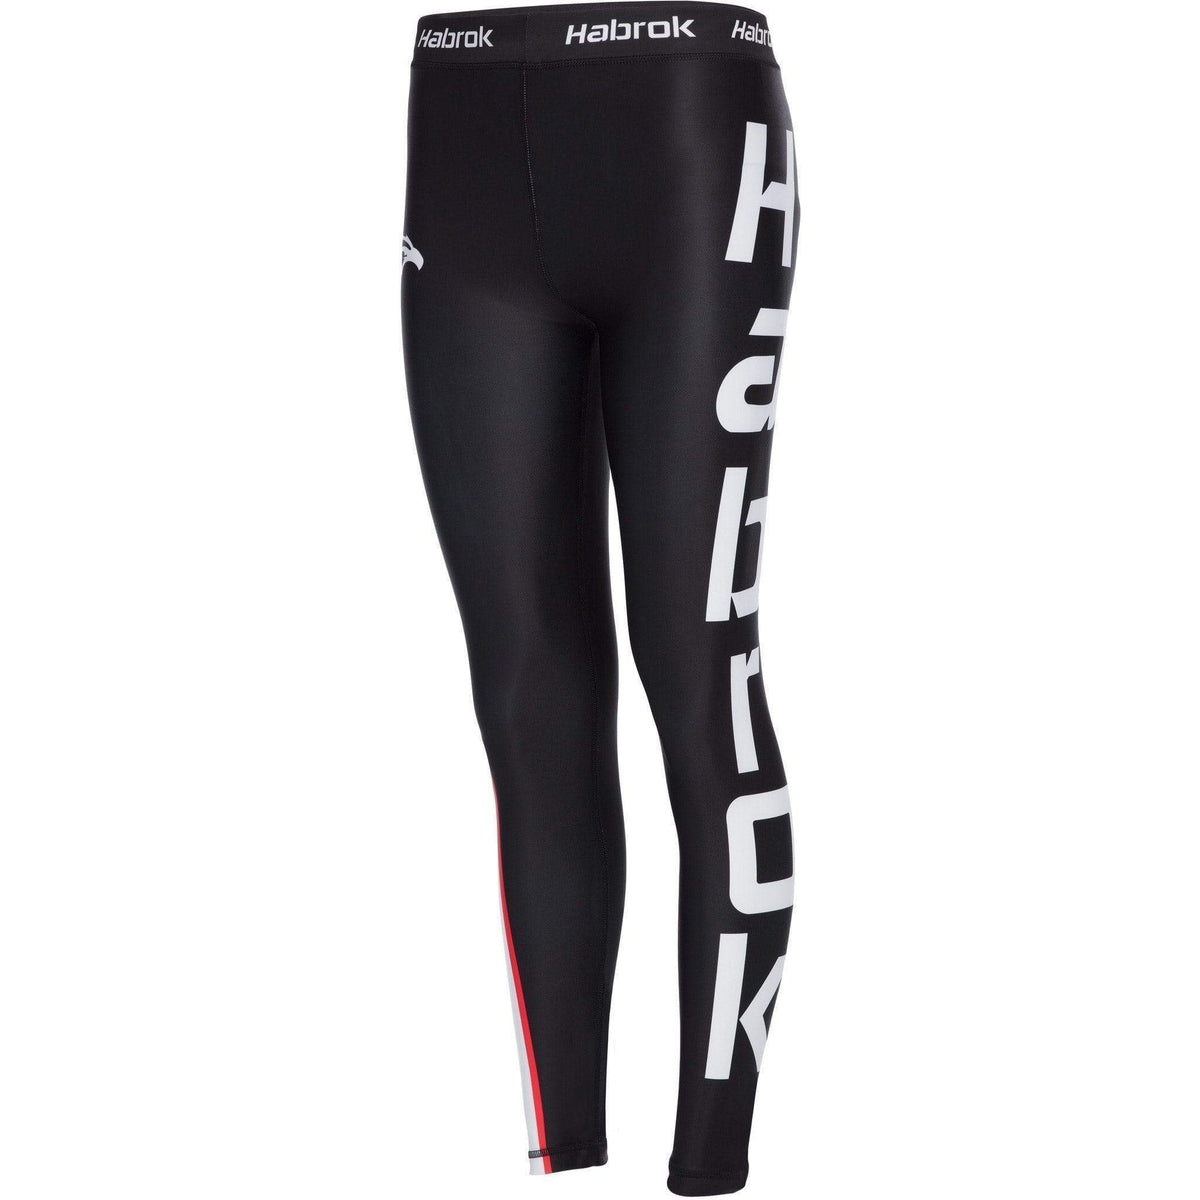 Habrok Spats XS / Black Performance Spats | Women 680334793924